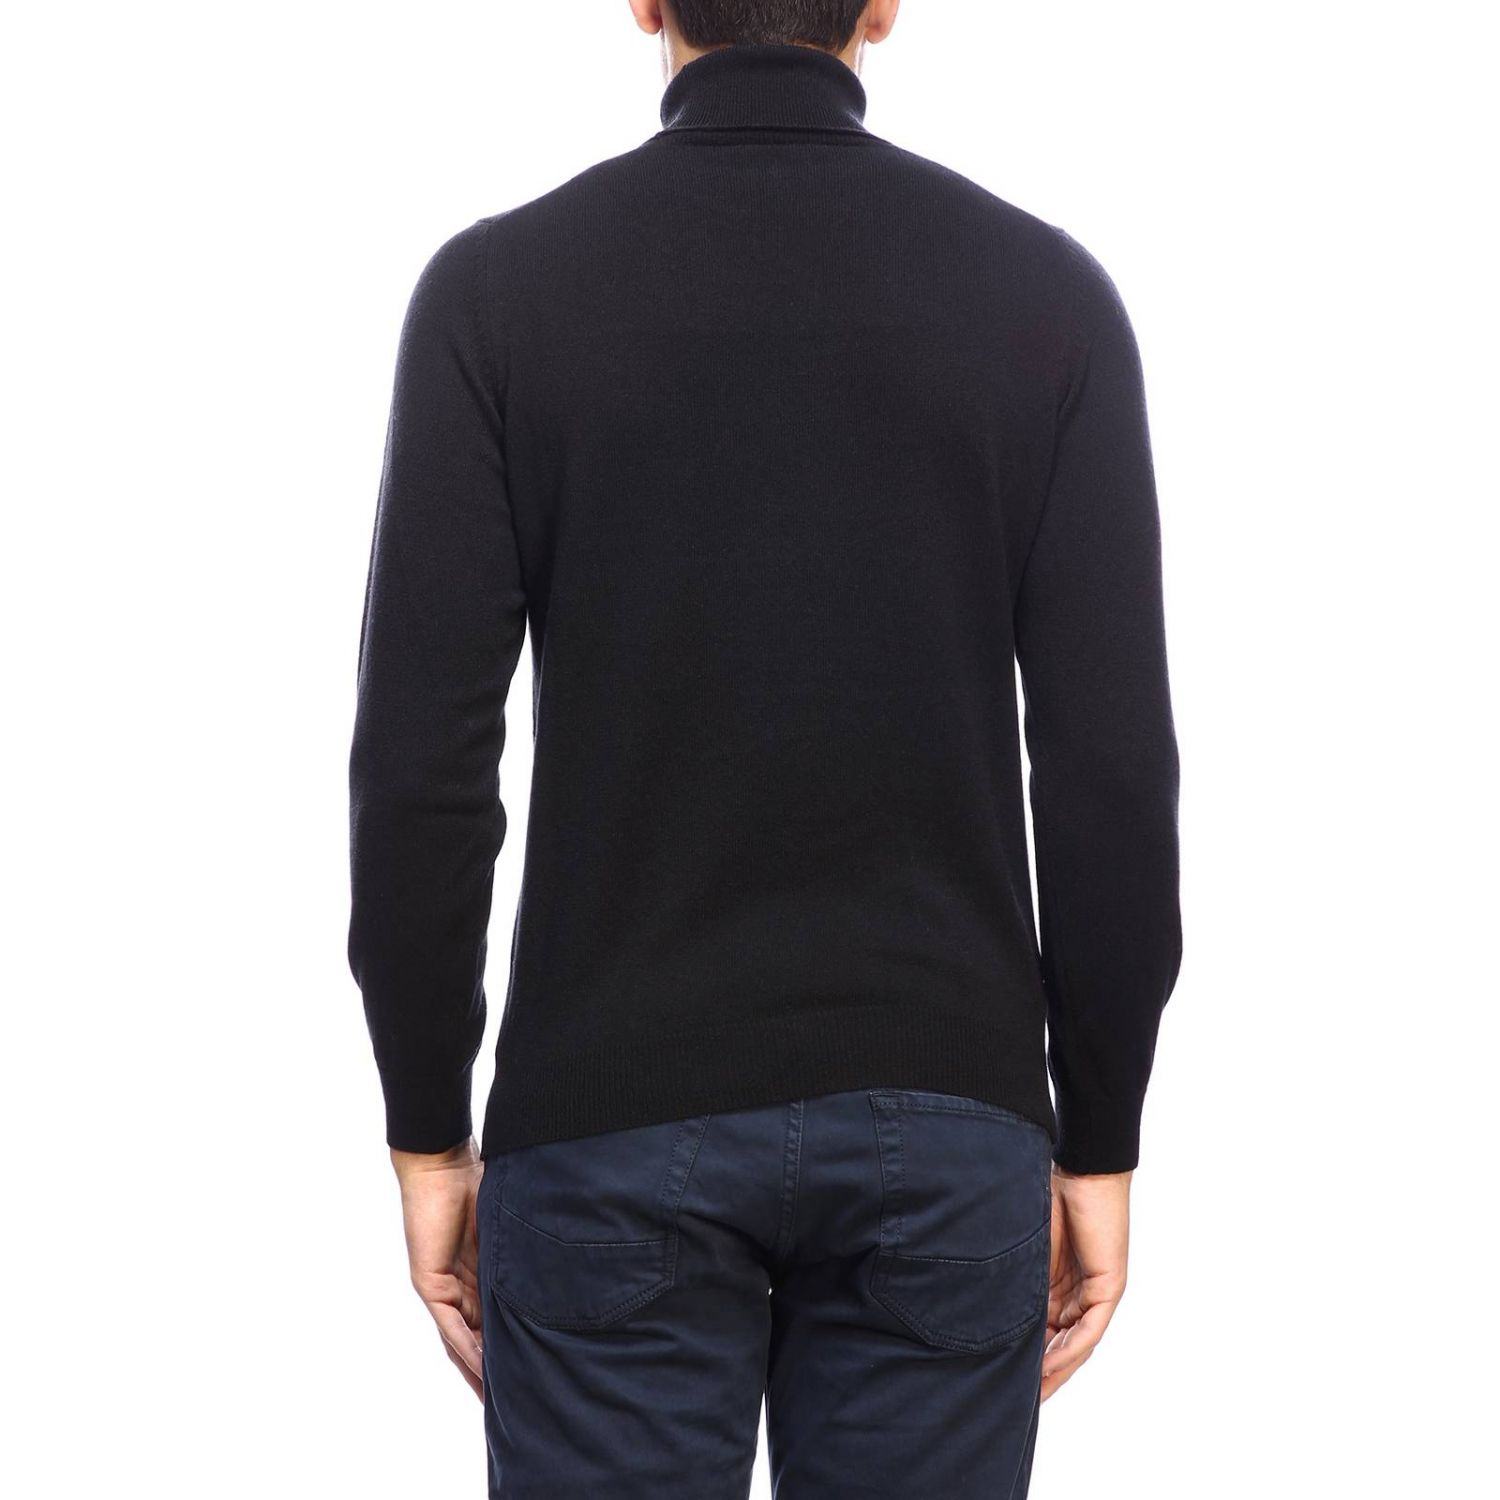 Sweater men Osvaldo Bruni black 3